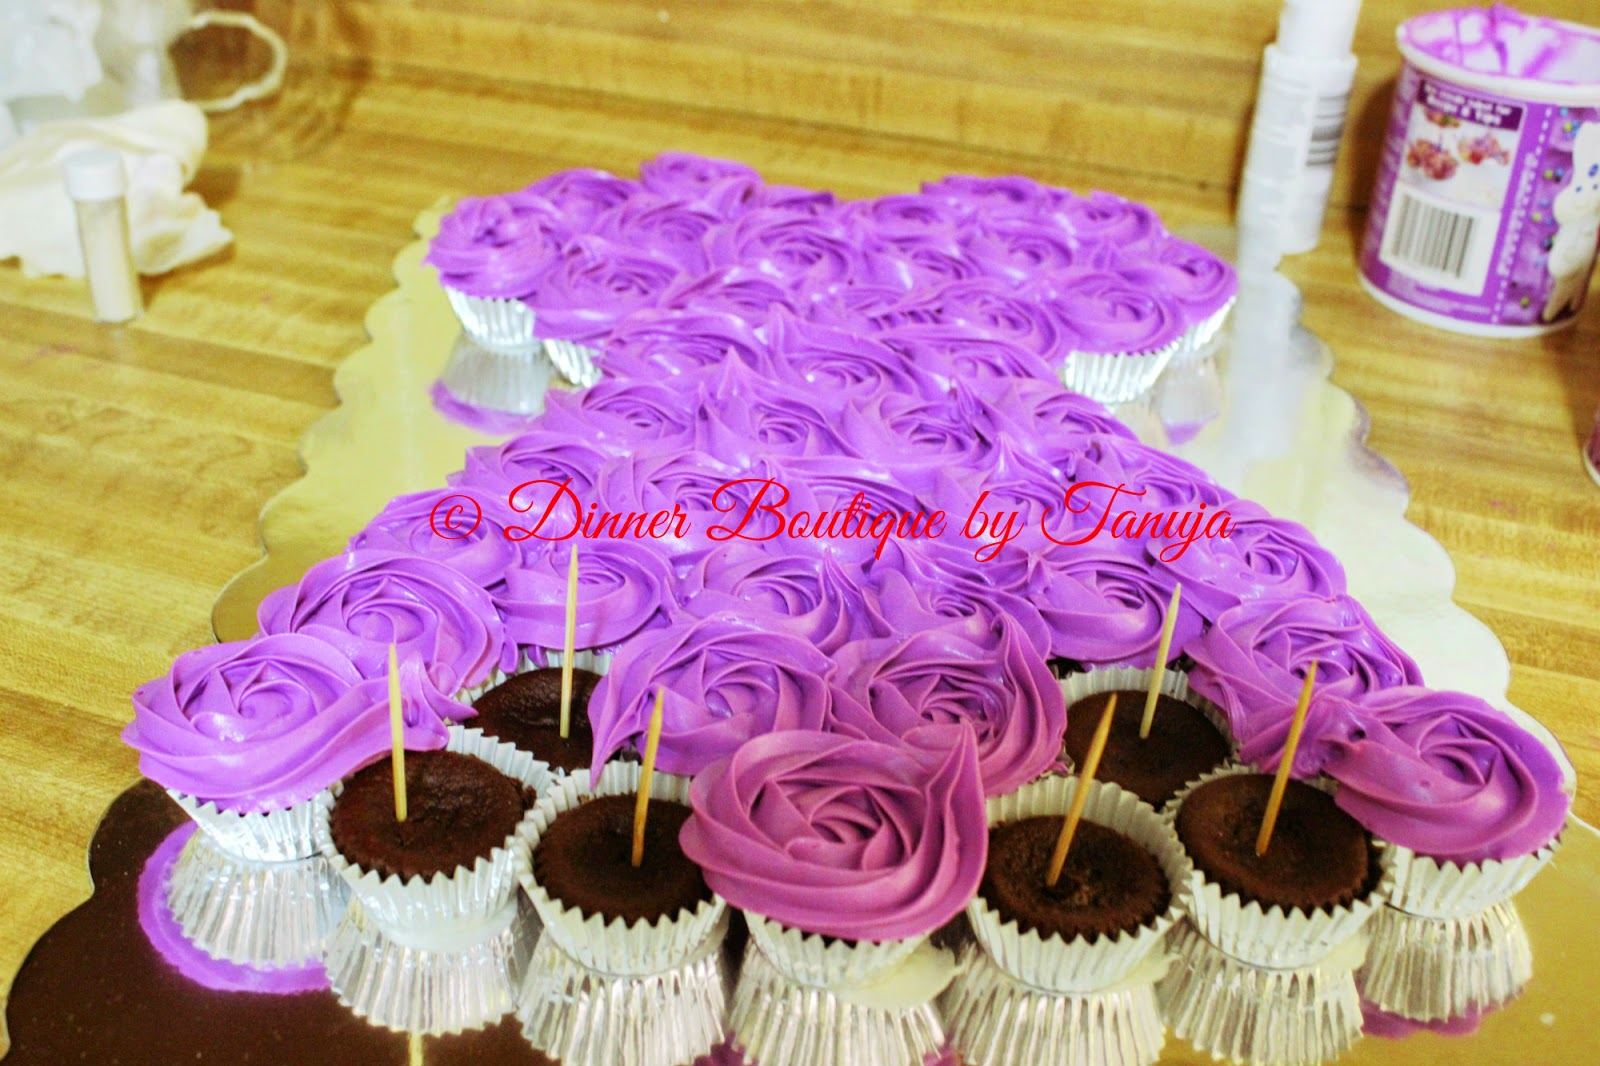 Dinner Boutique Sofia The First Pull Apart Cake